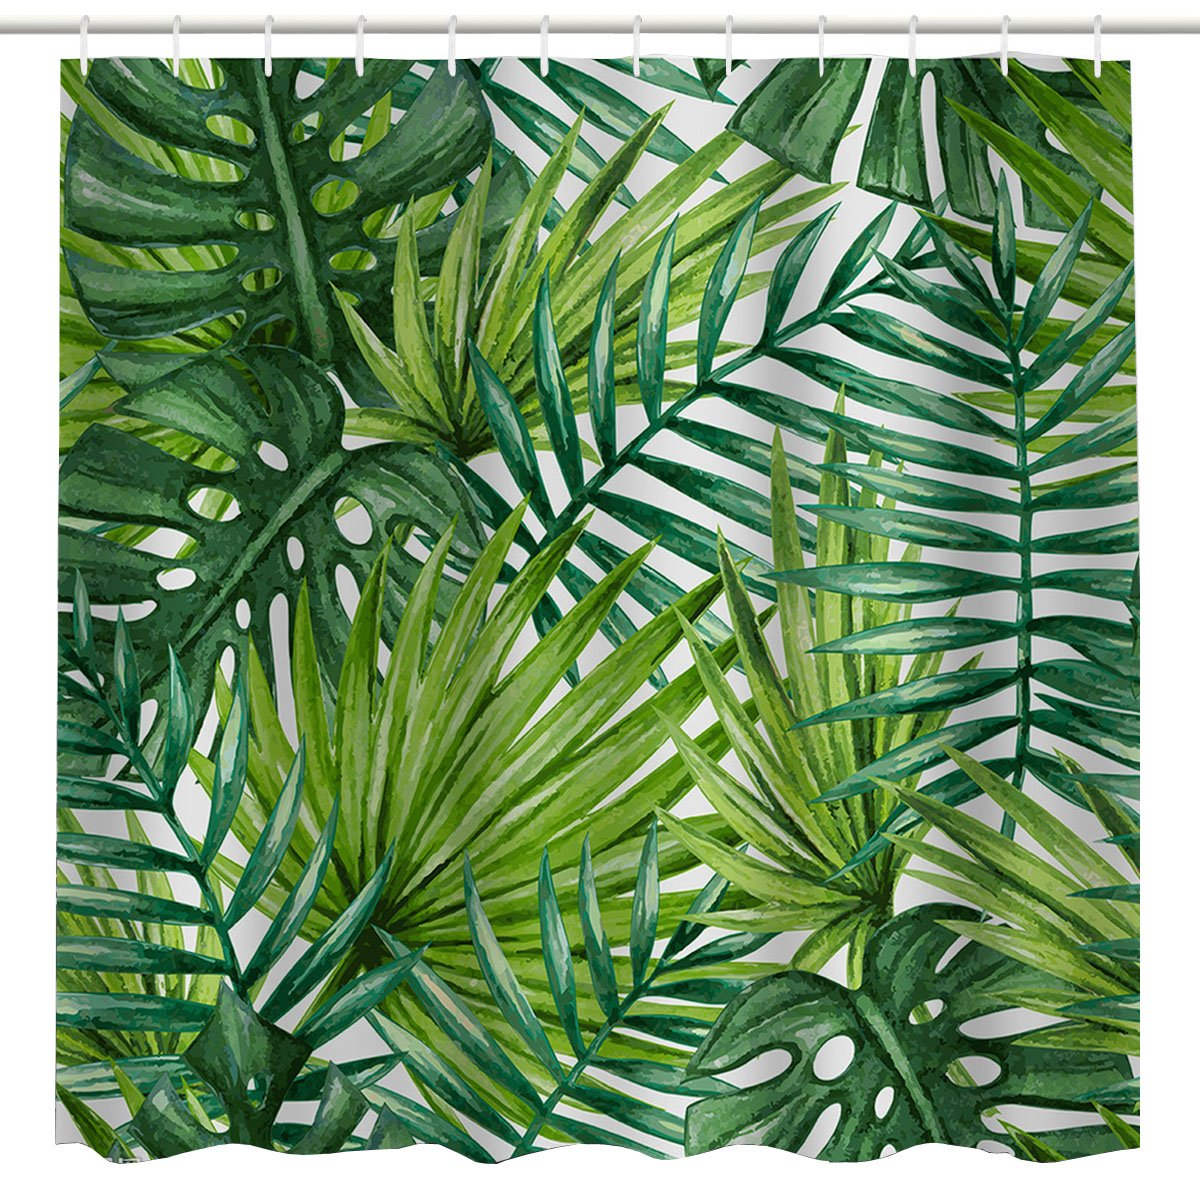 Broshan Leaf Print Shower Curtain Fabric Tropical Palm Leaves Pattern Hawaiian Plant Bathroom Decoration Green Natural Waterproof Fabric Bathroom